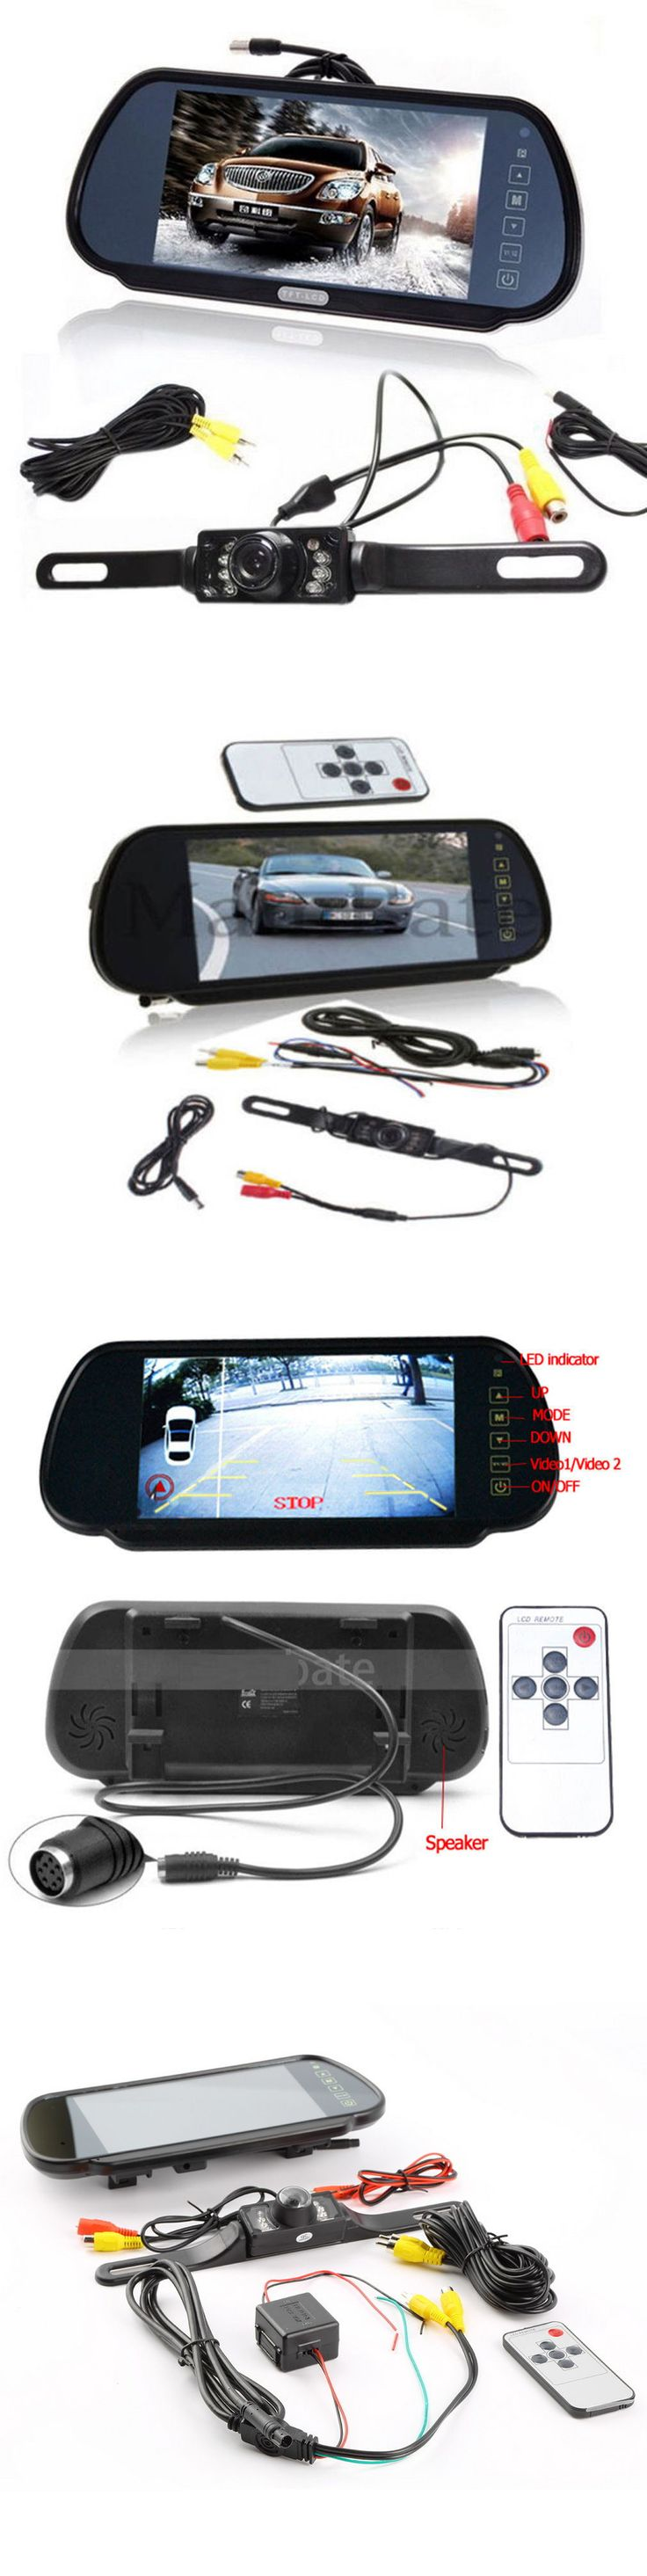 Rear View Monitors Cams and Kits: 7 Lcd Car Rear View Mirror Monitor Night Vision Backup Reverse Camera BUY IT NOW ONLY: $33.82